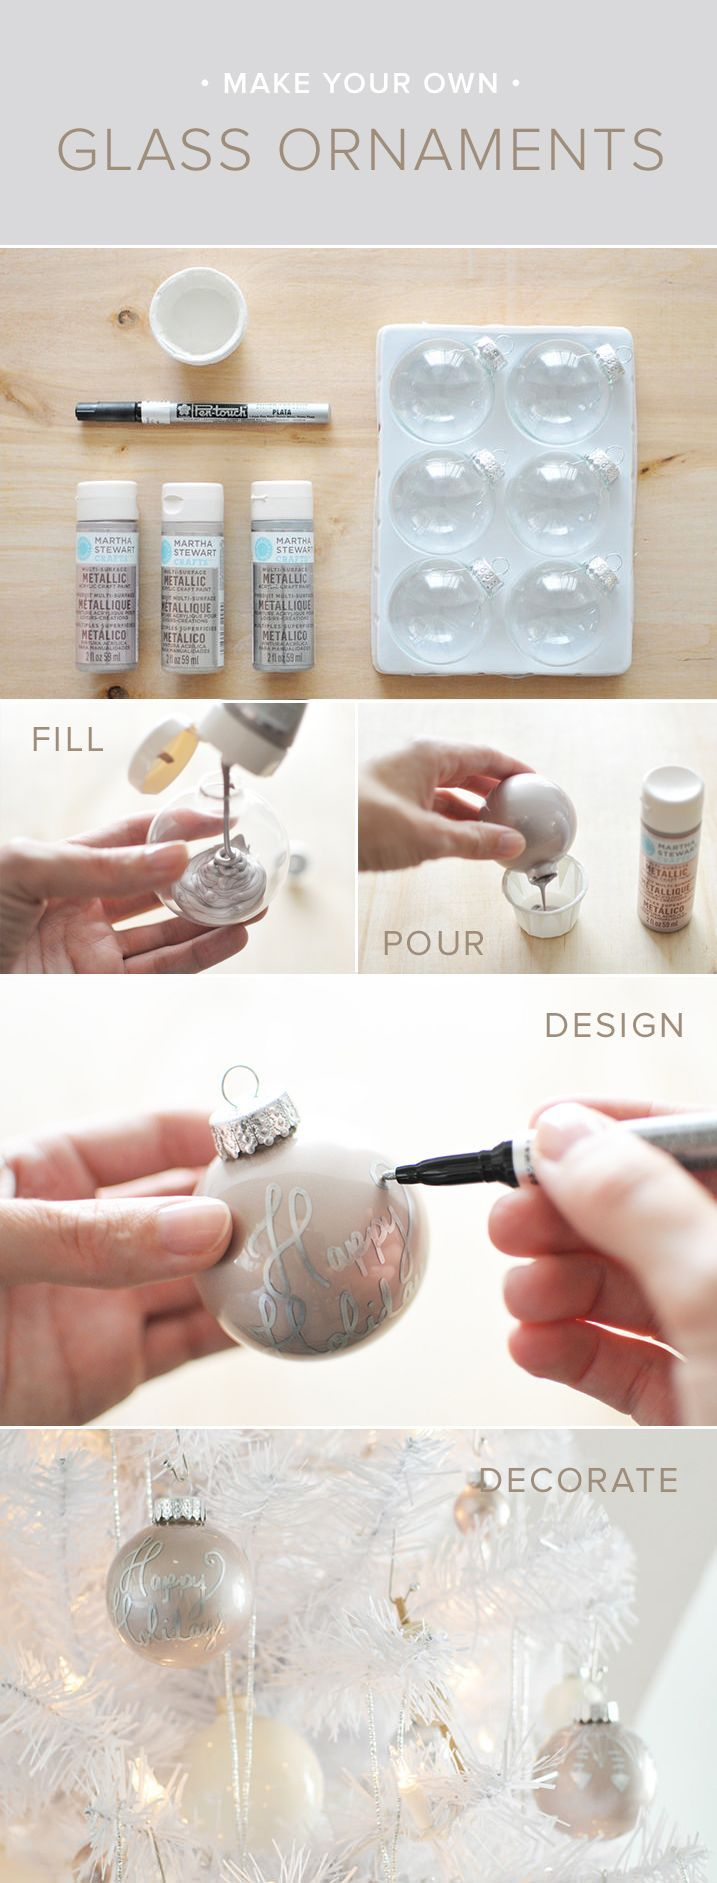 How to make your own glass ornaments pictures photos and for How to make your own ornaments ideas